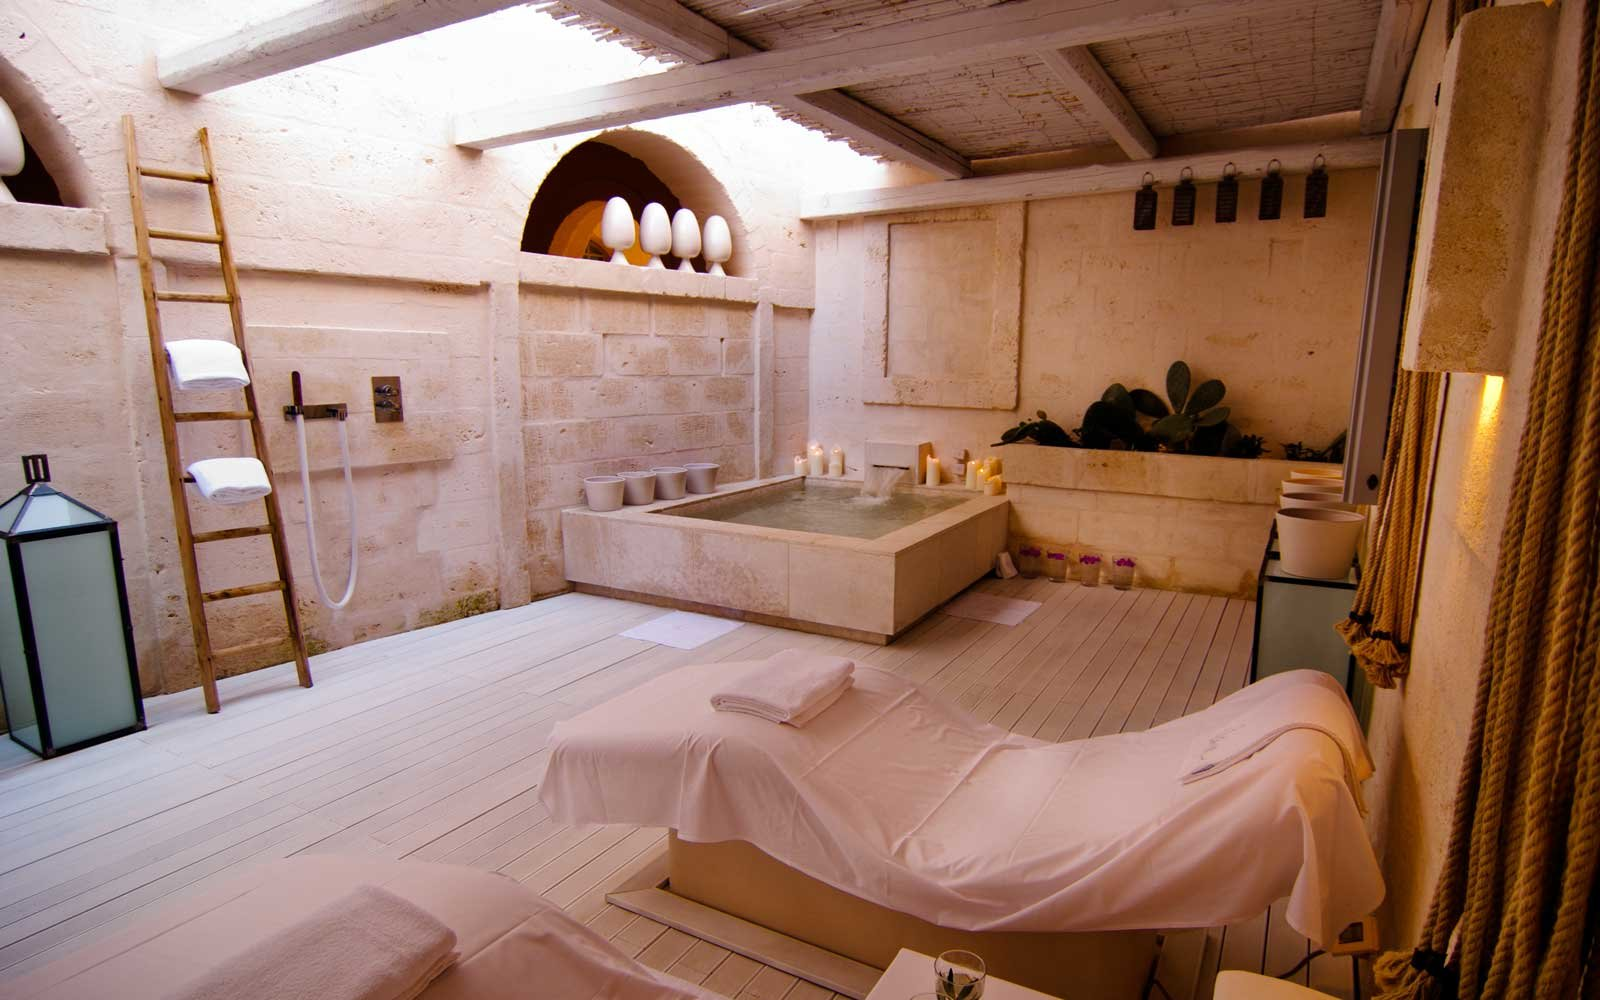 The spa at Borgo Egnazia, in Italy